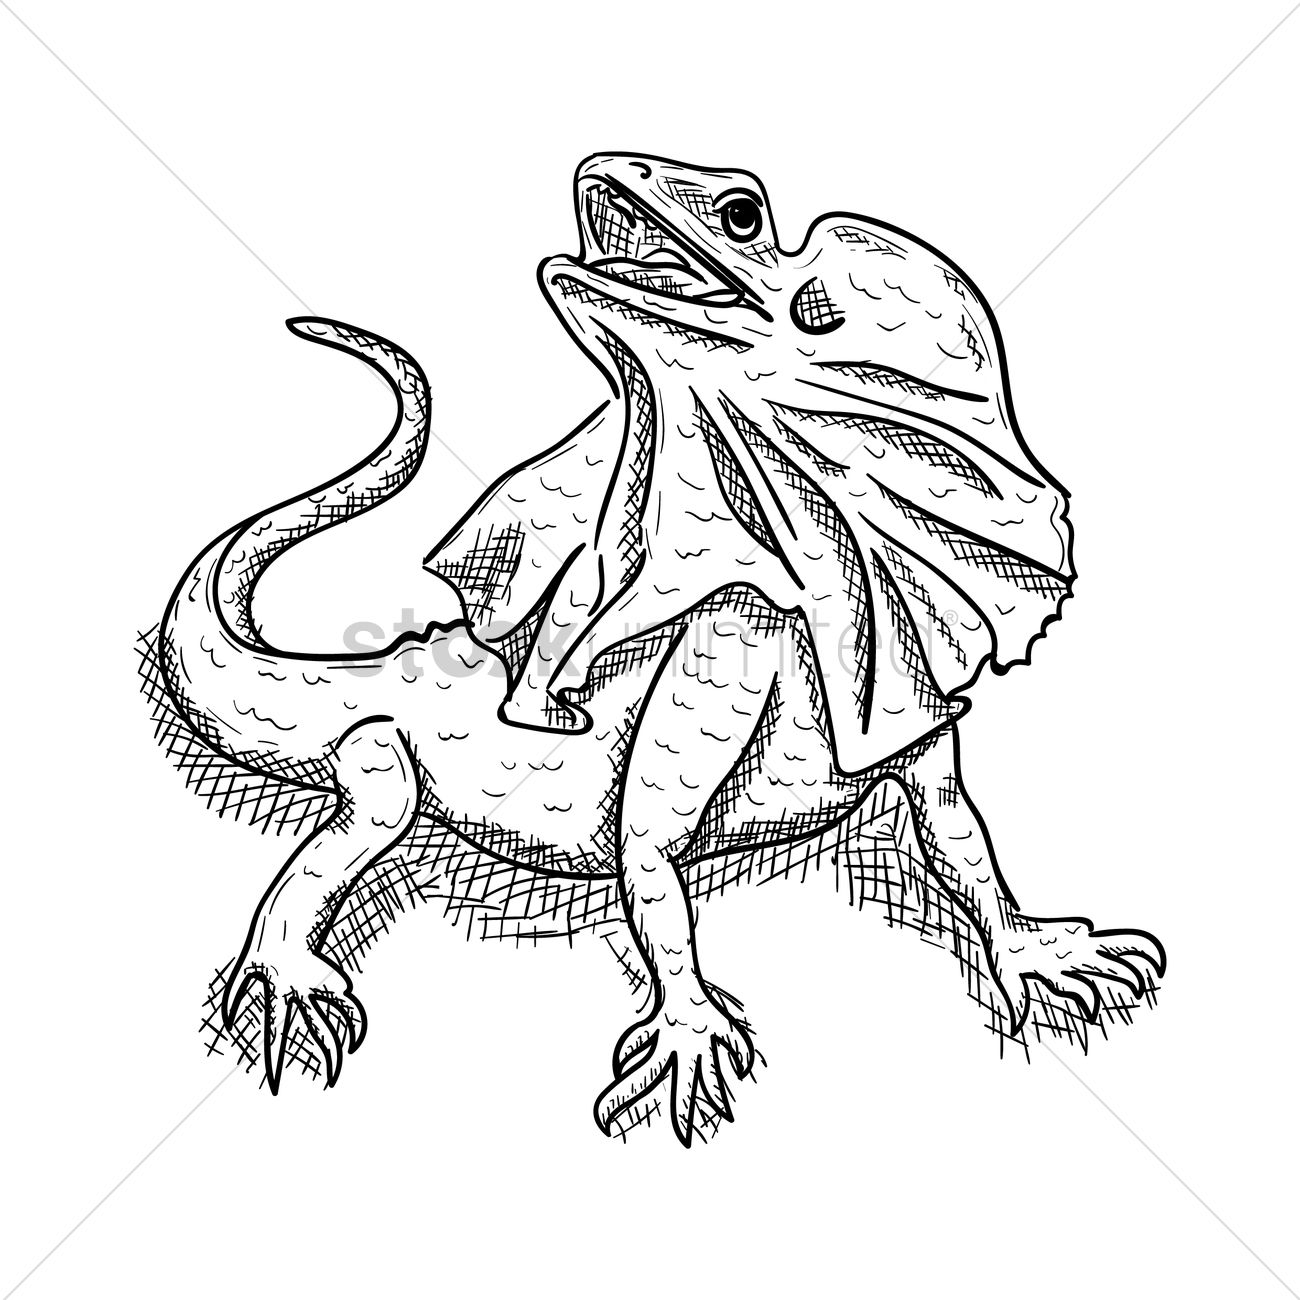 Line Drawings Of Australian Animals : Frilled lizard vector image stockunlimited